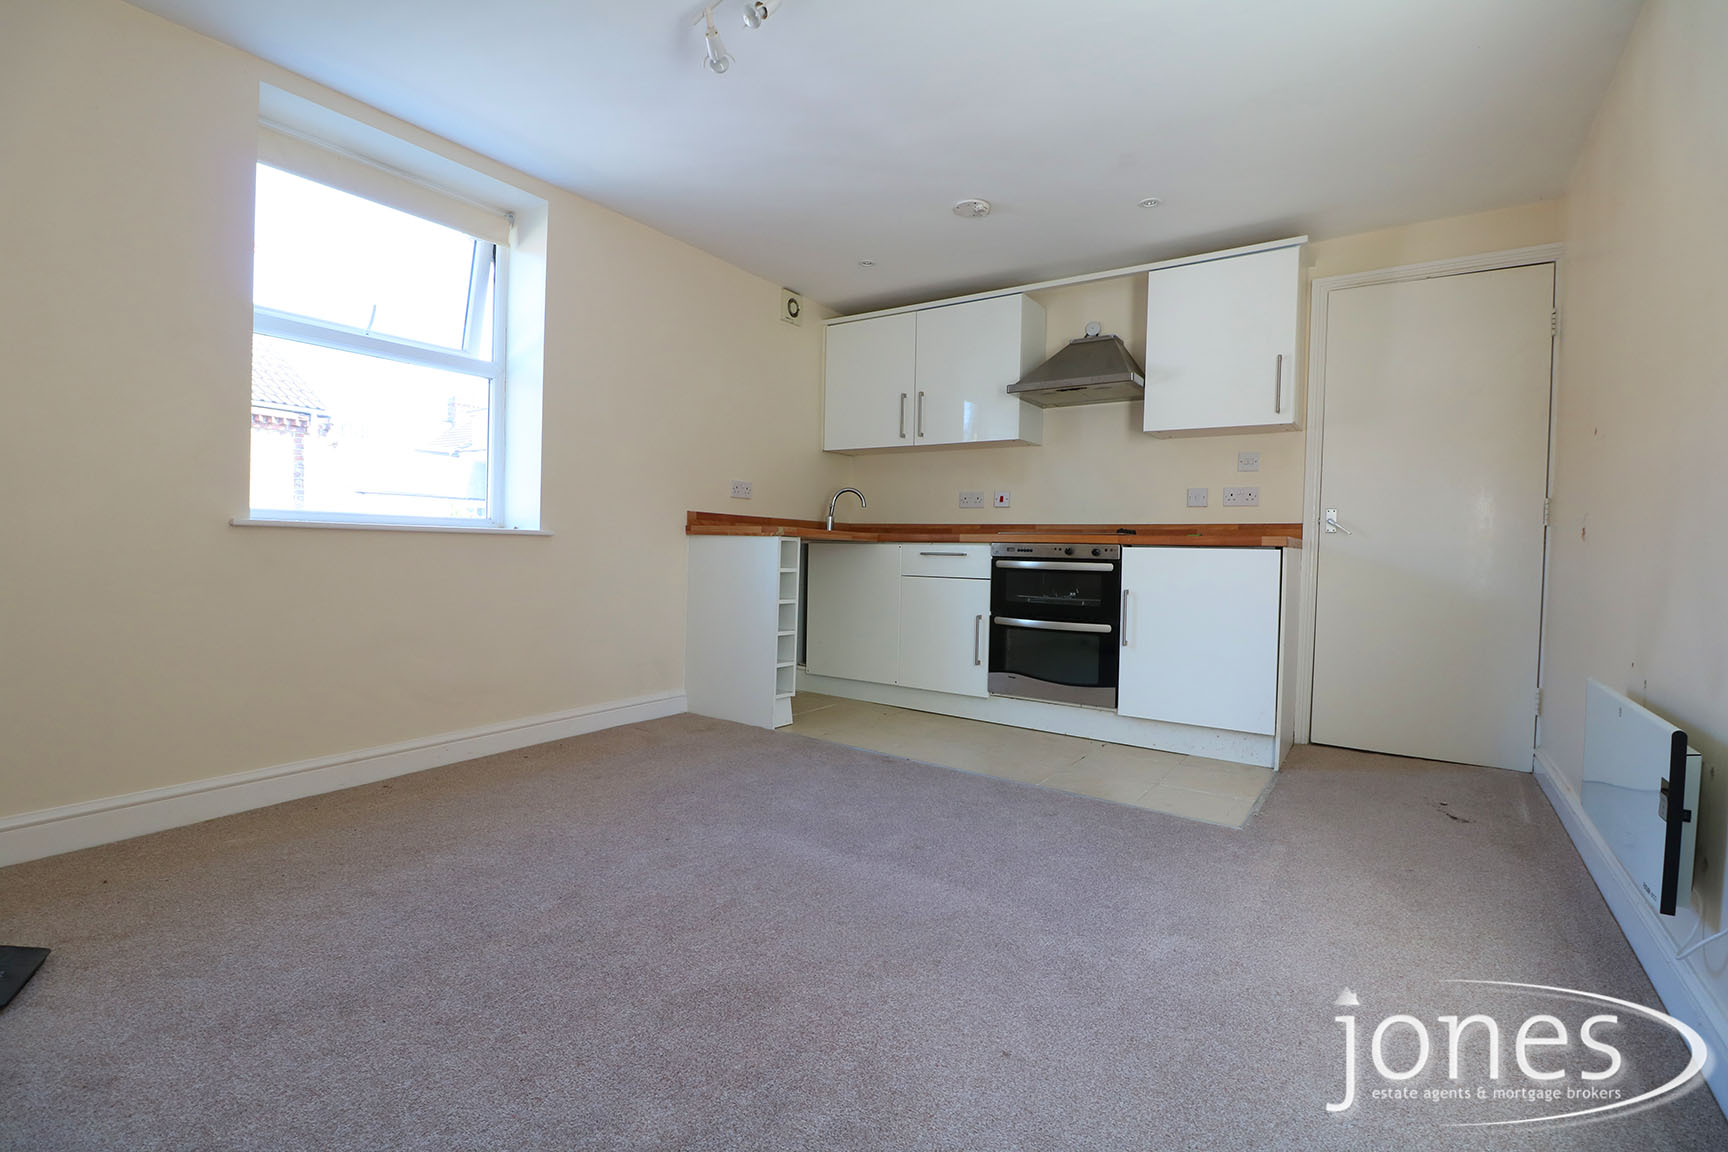 Home for Sale Let - Photo 03 Norton Mews, 359 Norton Road (OFF Dorlcote Place ), Stockton on Tees, TS20 2PH